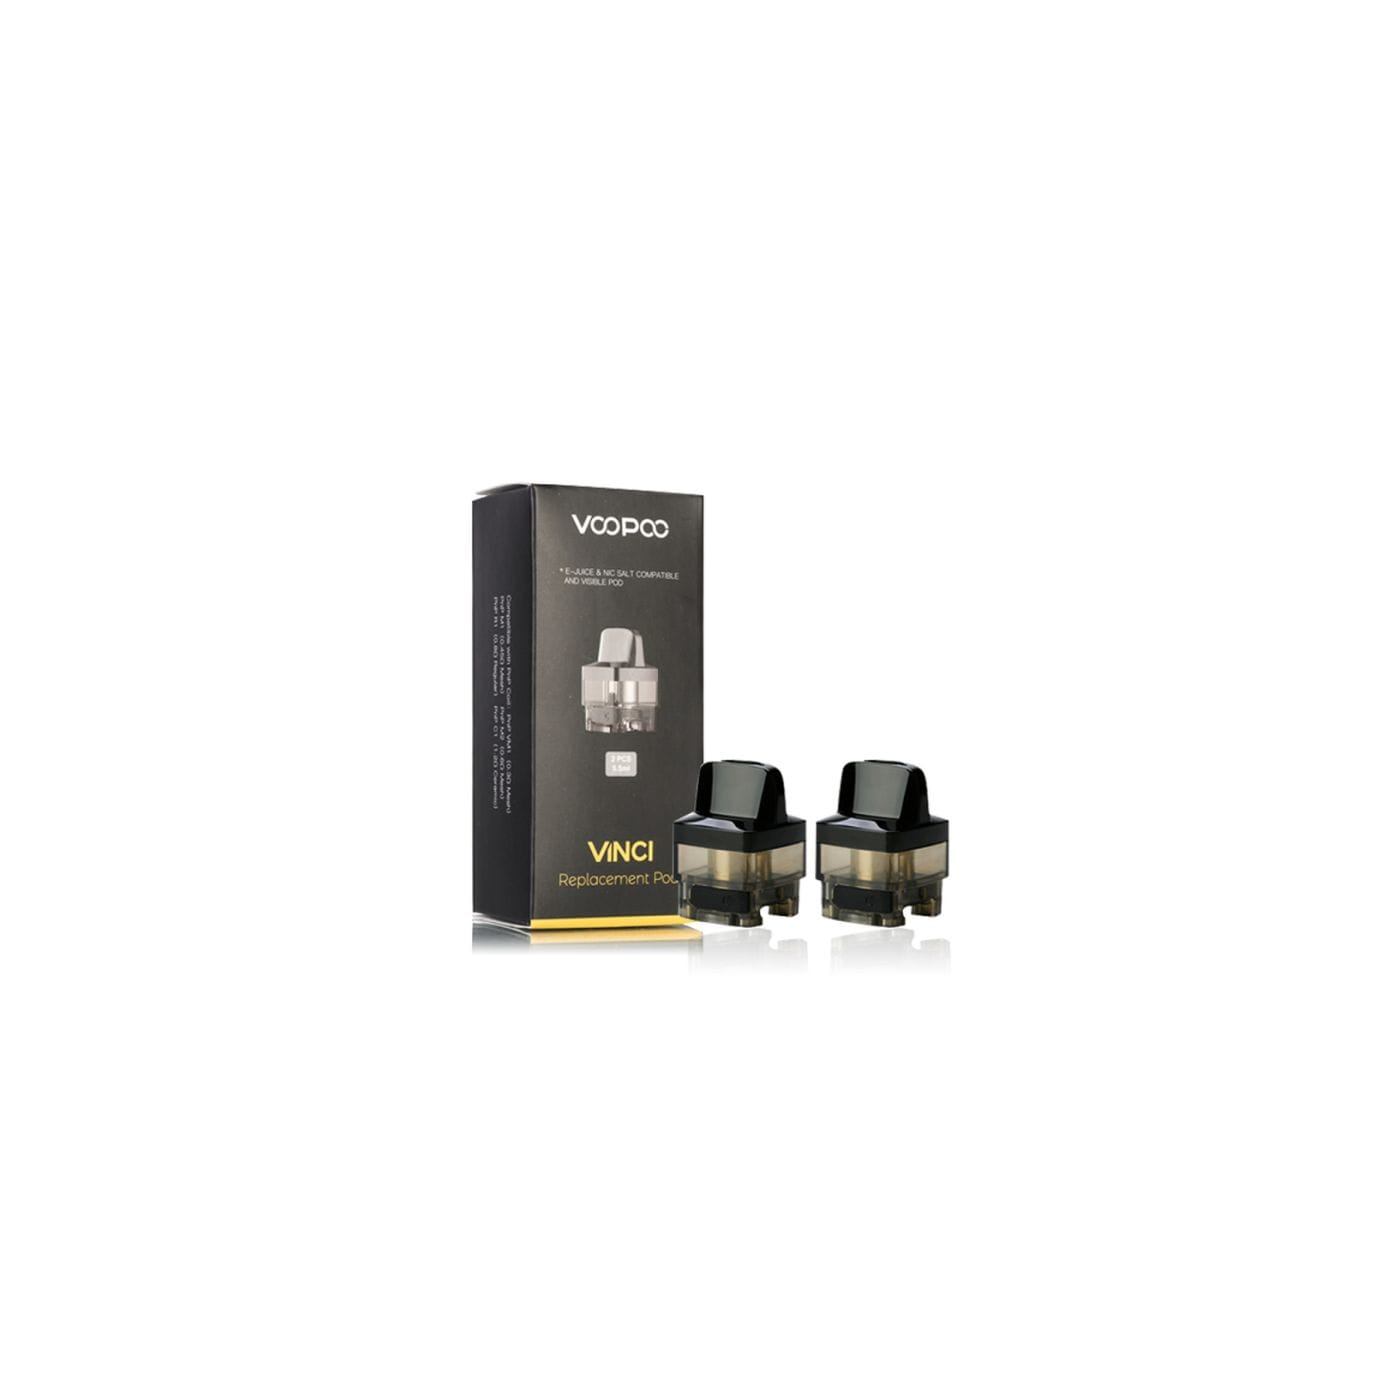 VooPoo Vinci Air Replacement Pod - 2 Pack